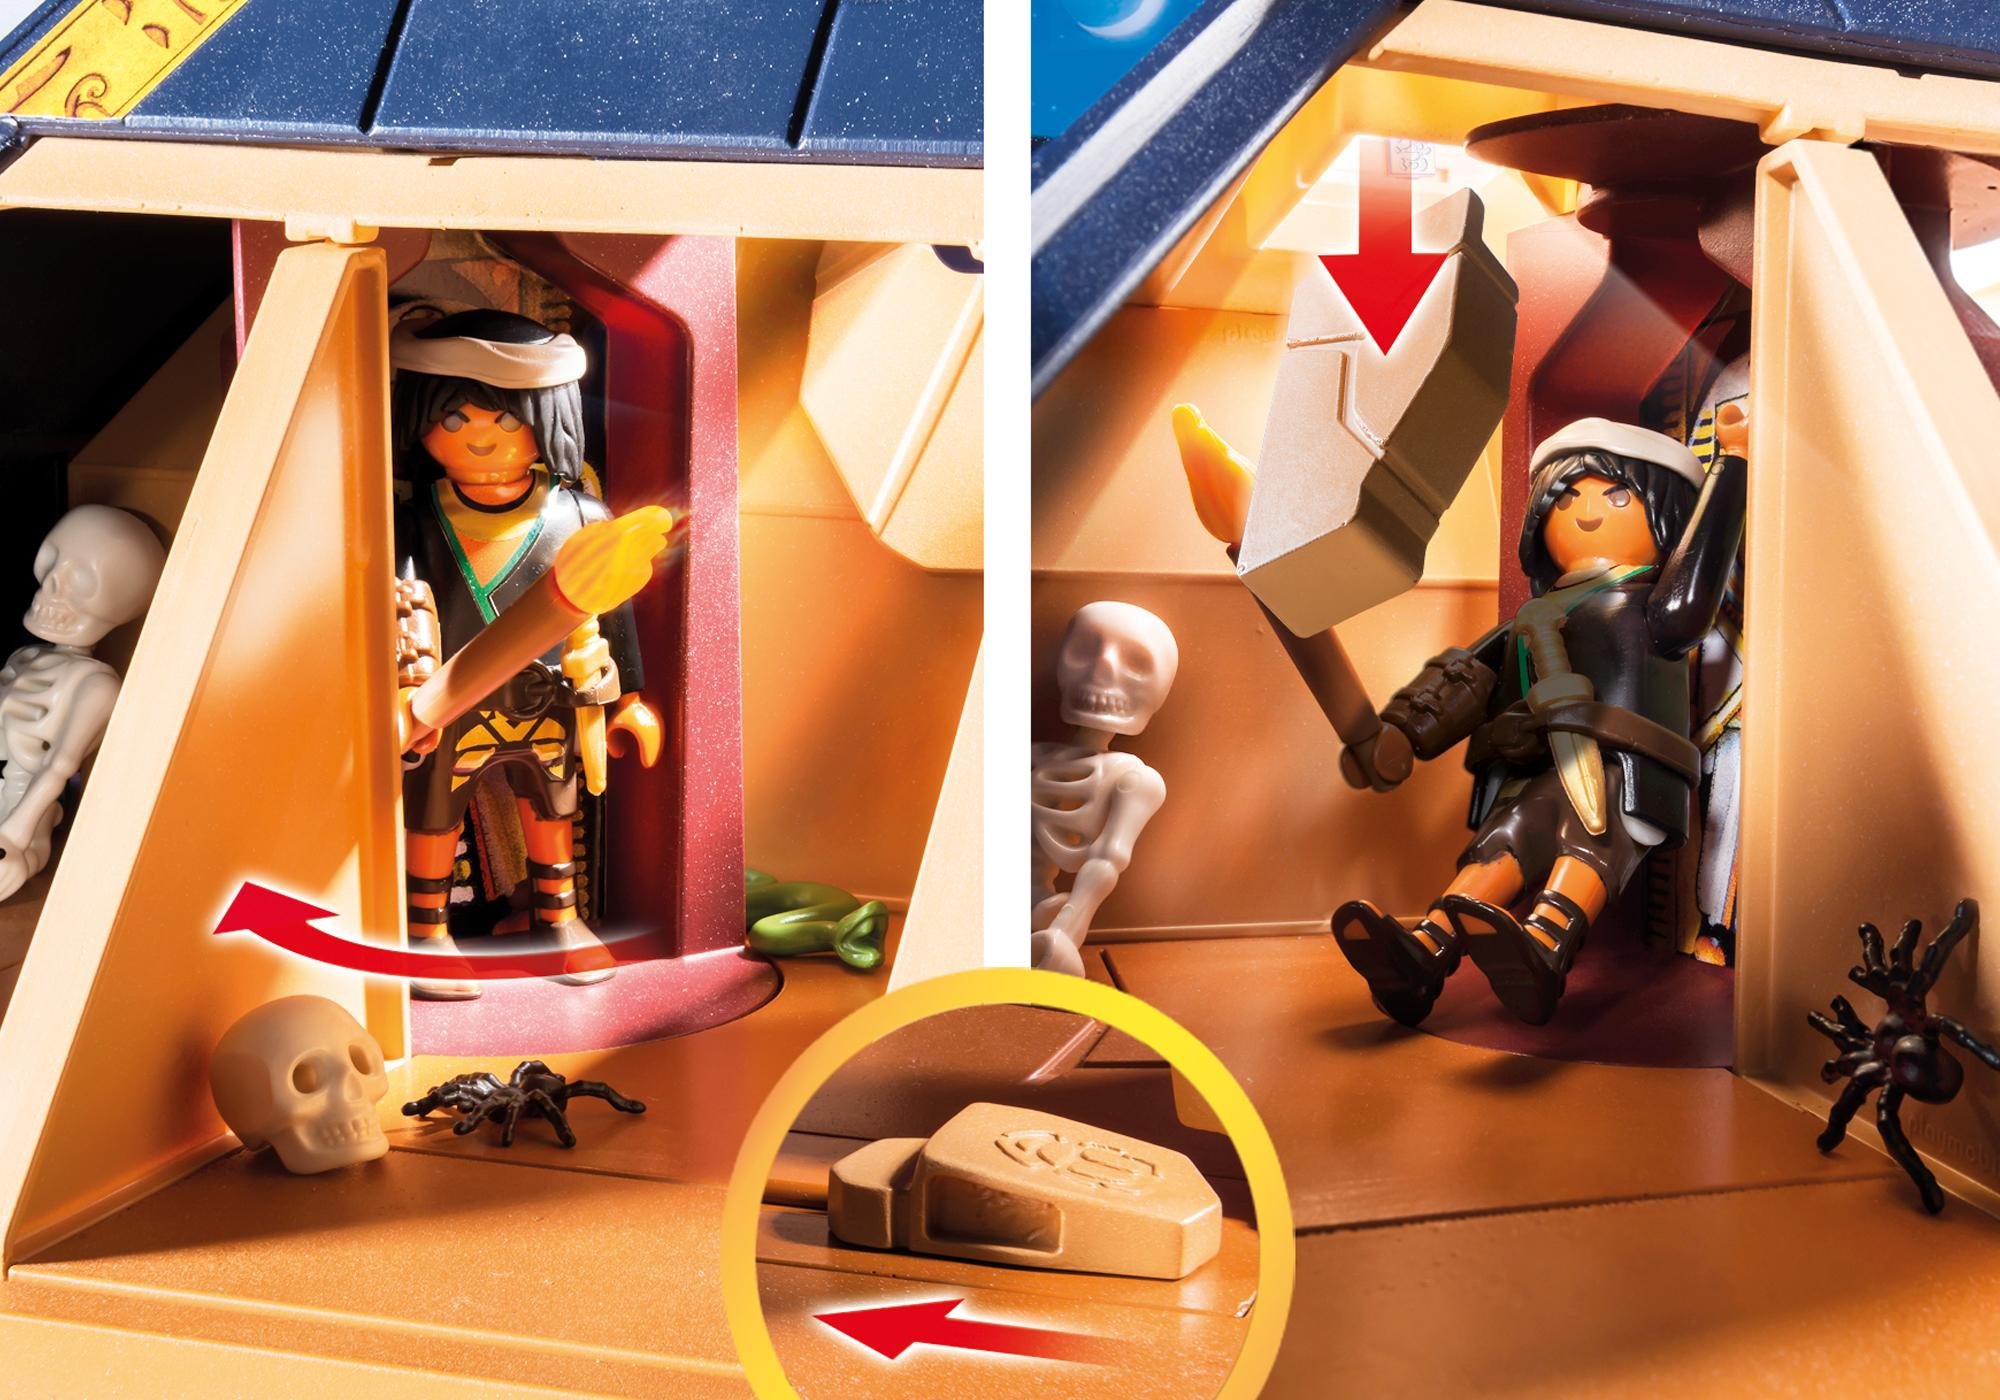 http://media.playmobil.com/i/playmobil/5386_product_extra5/Римляне и Египтяне: Пирамида Фараона